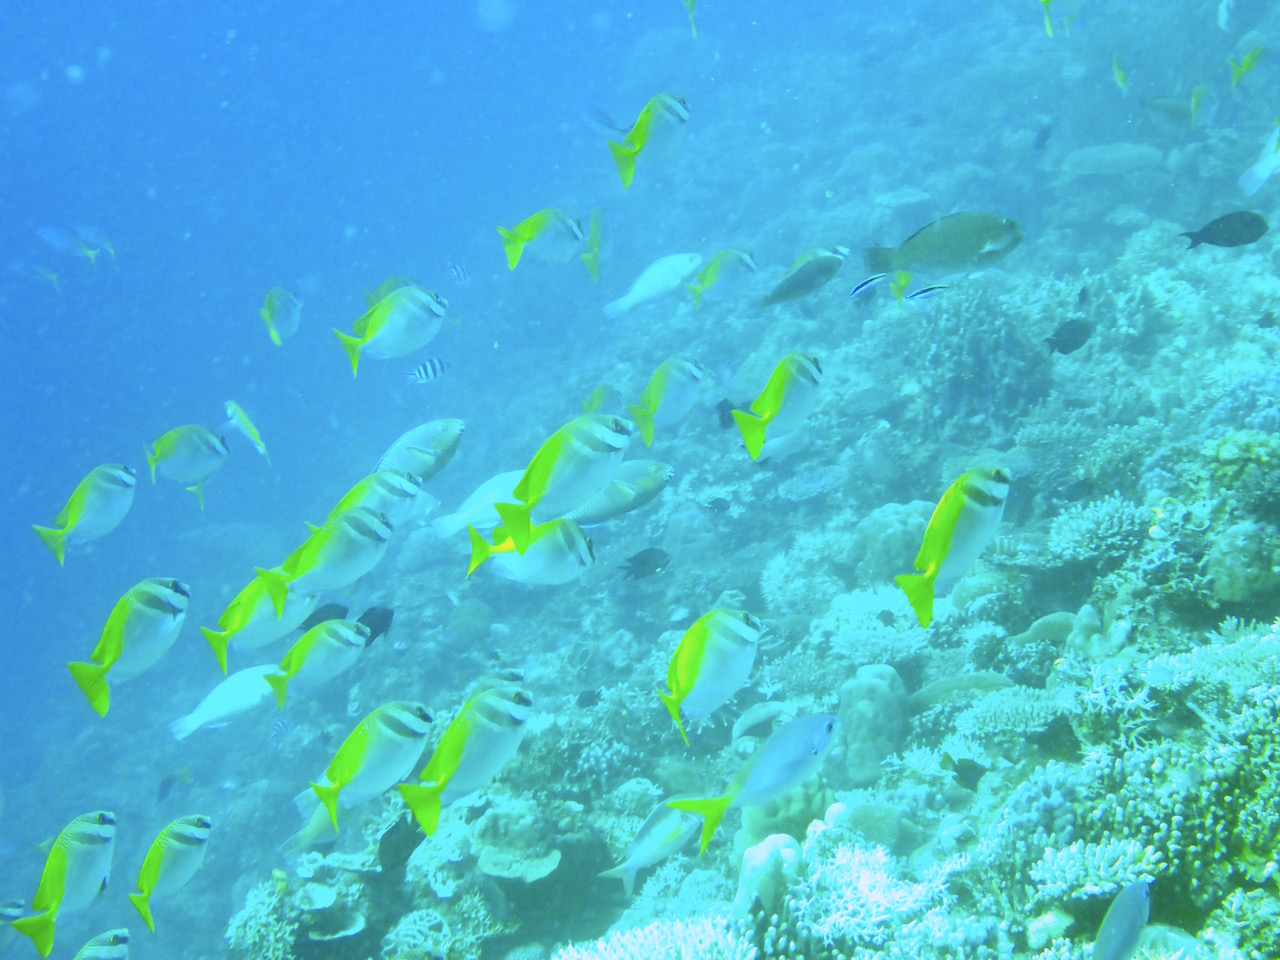 Yellow lined snapper. Photo: Vlademer Laloy